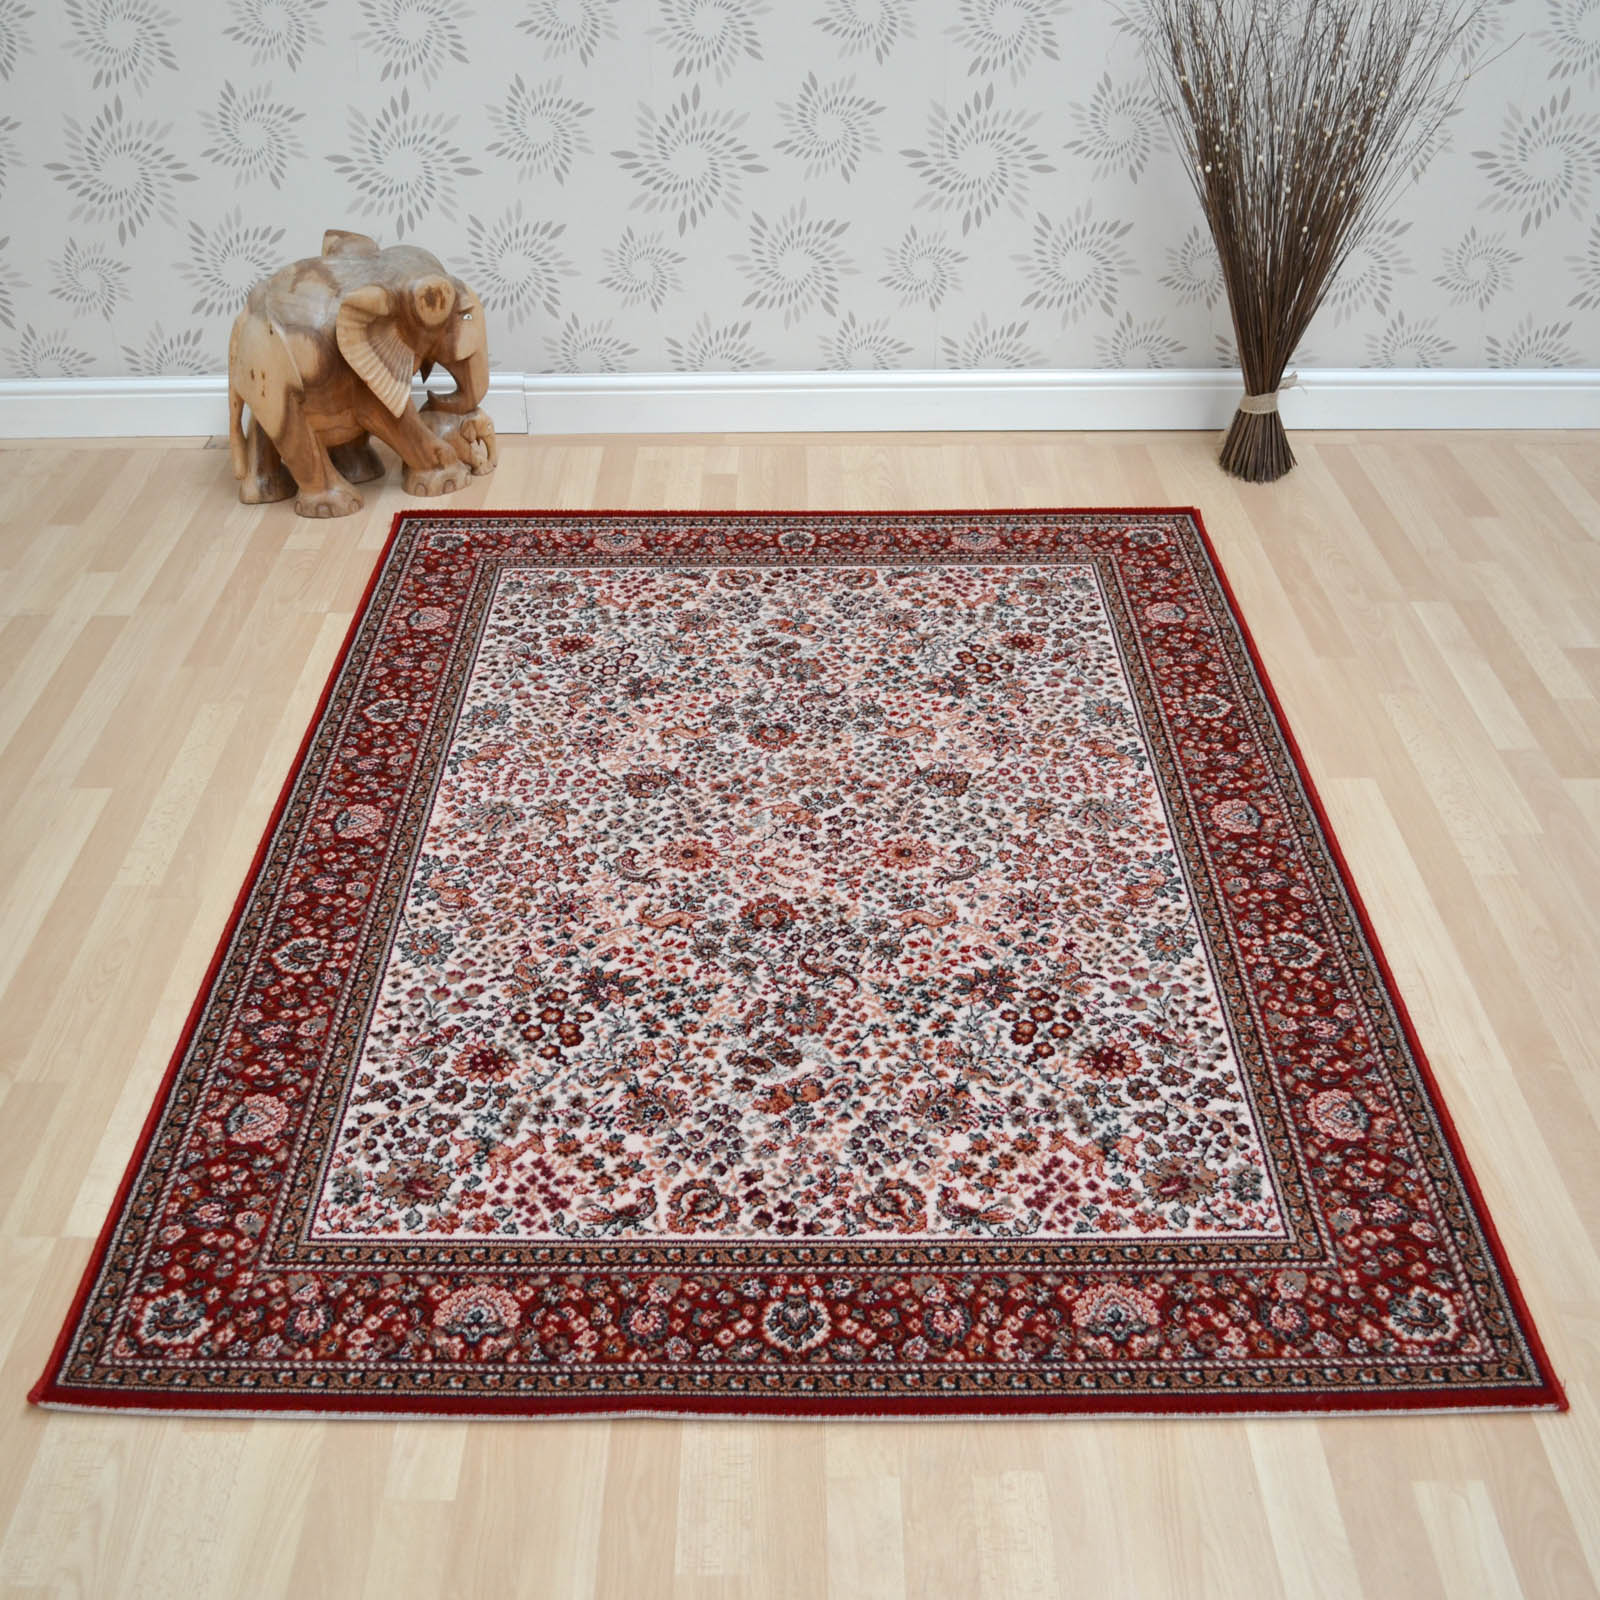 Lano Imperial Rugs 1959 680 Beige Red